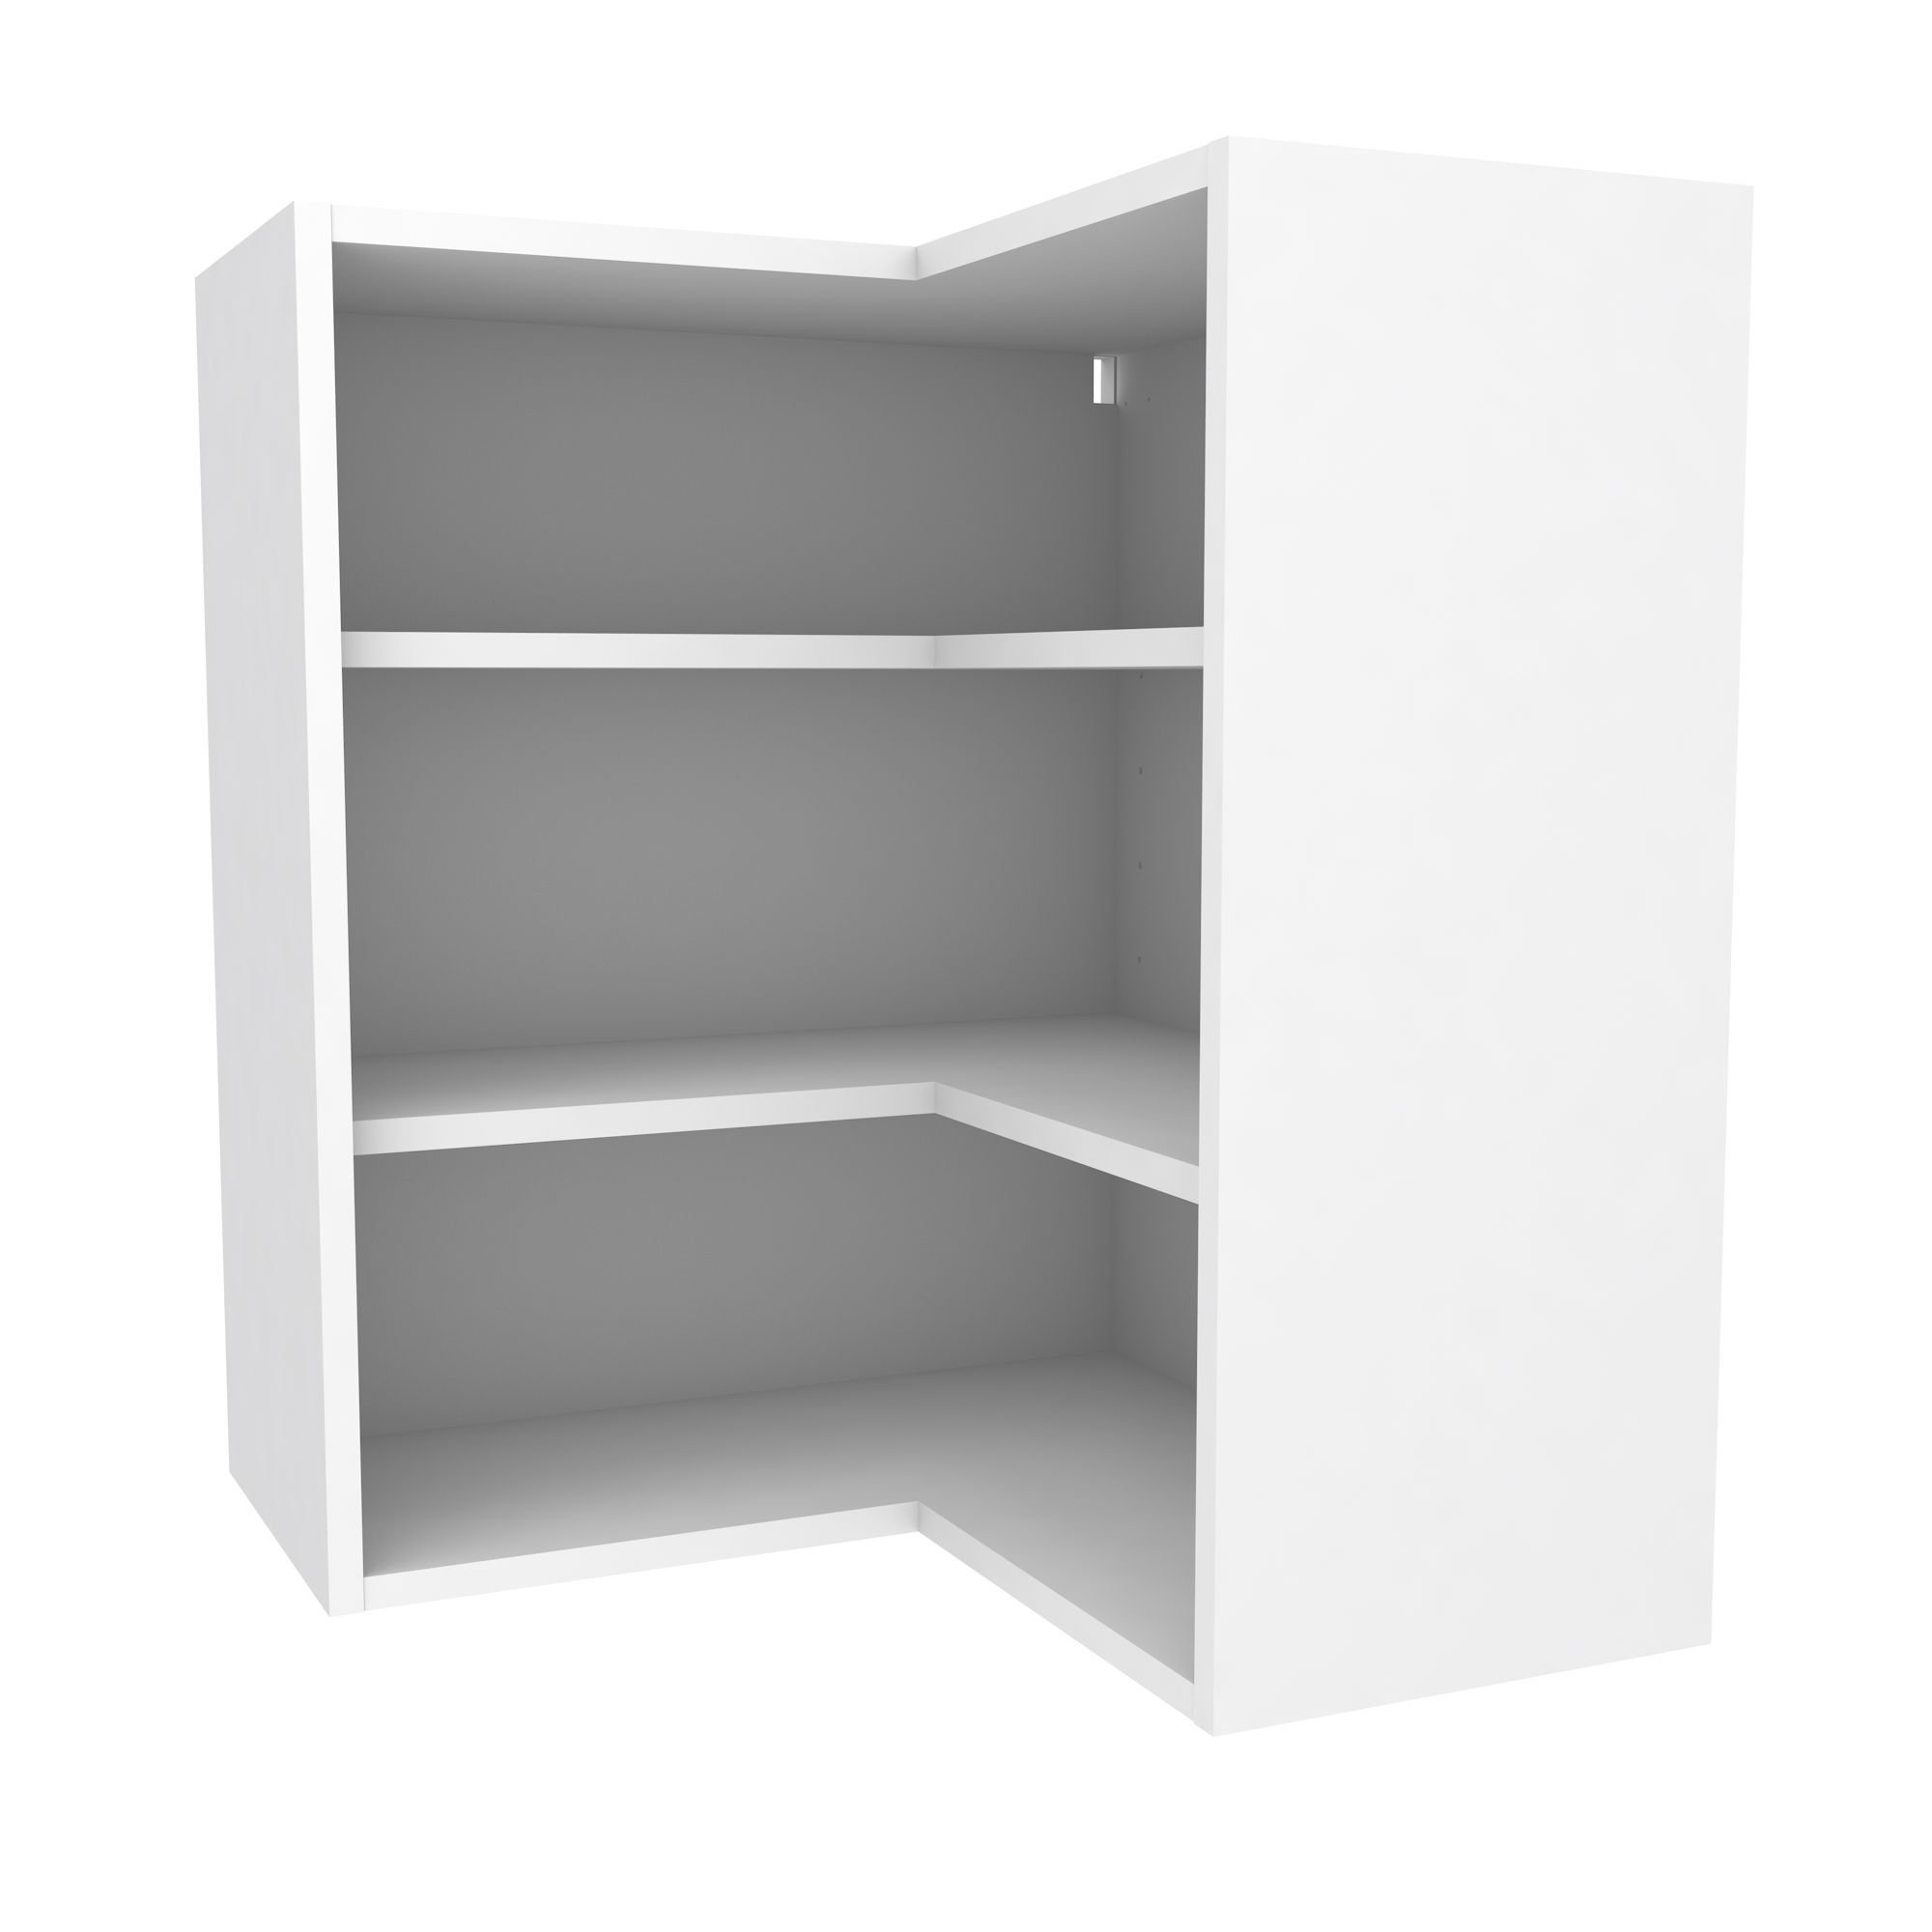 Lovely Cooke U0026 Lewis White Corner Wall Cabinet (W)625mm | Departments | DIY At Bu0026Q